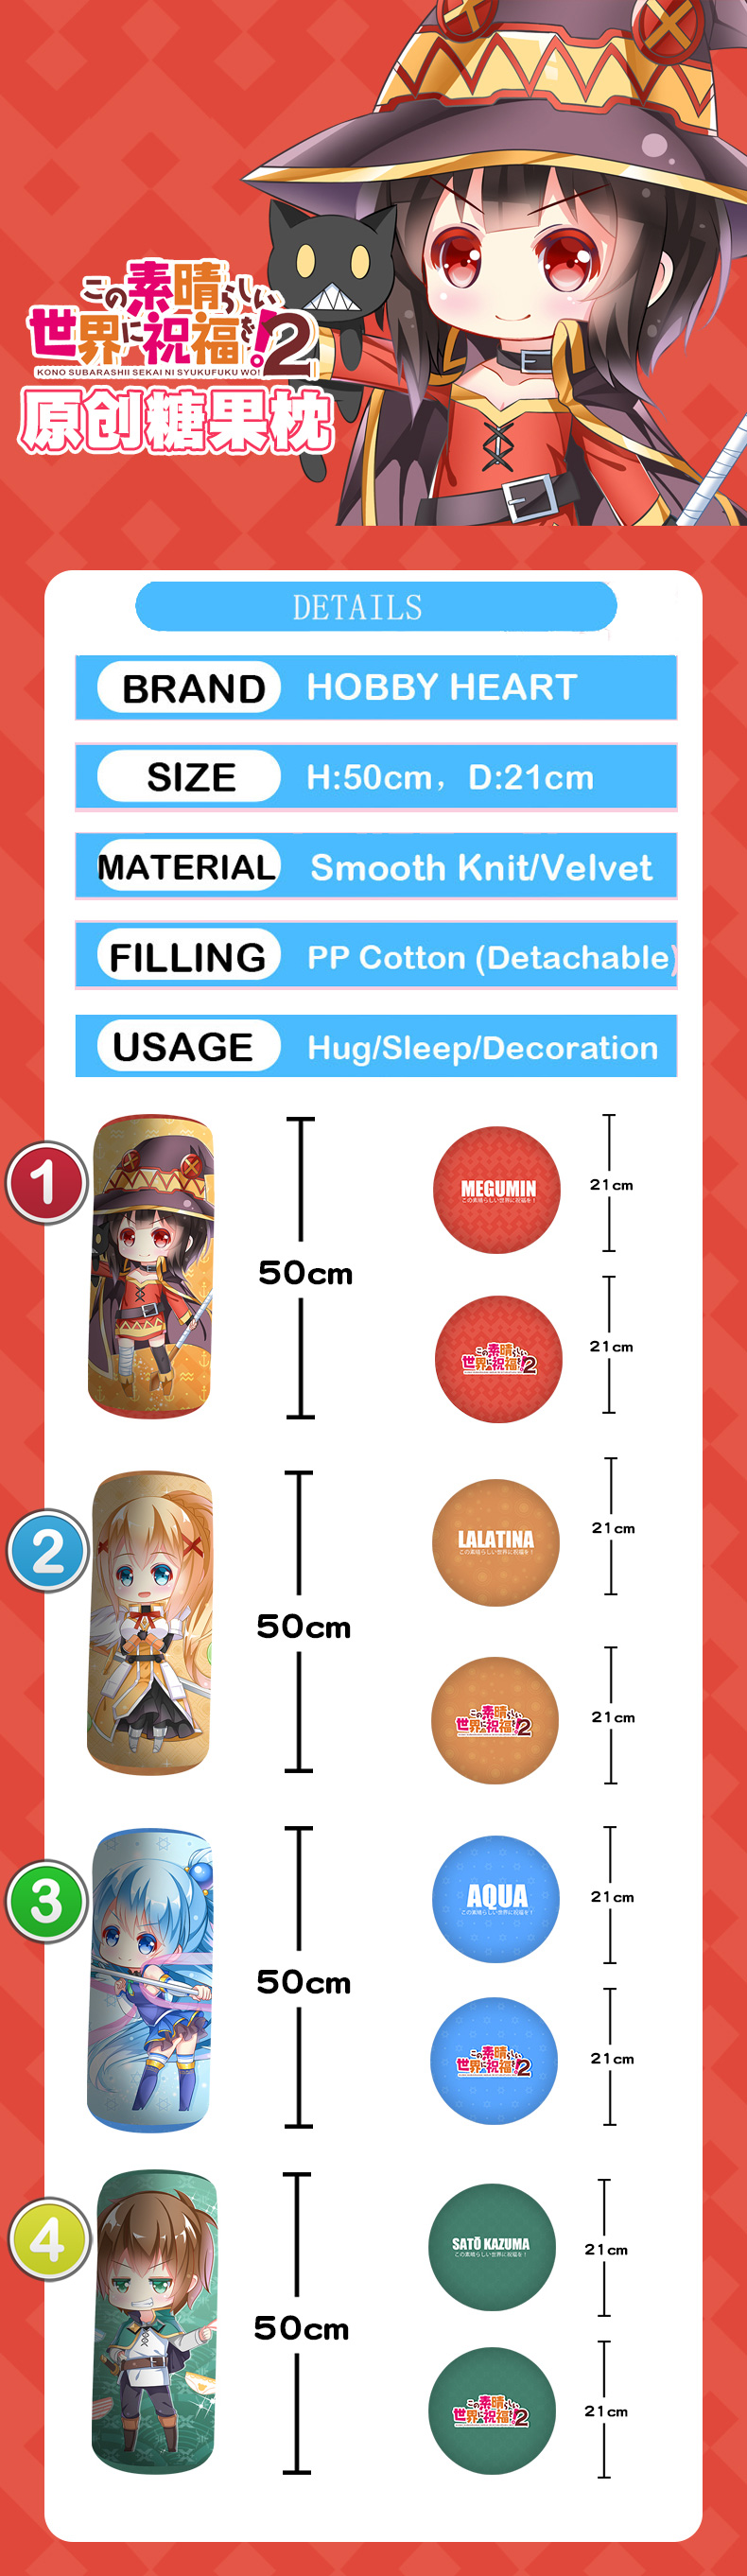 Anime Bloster Pillow